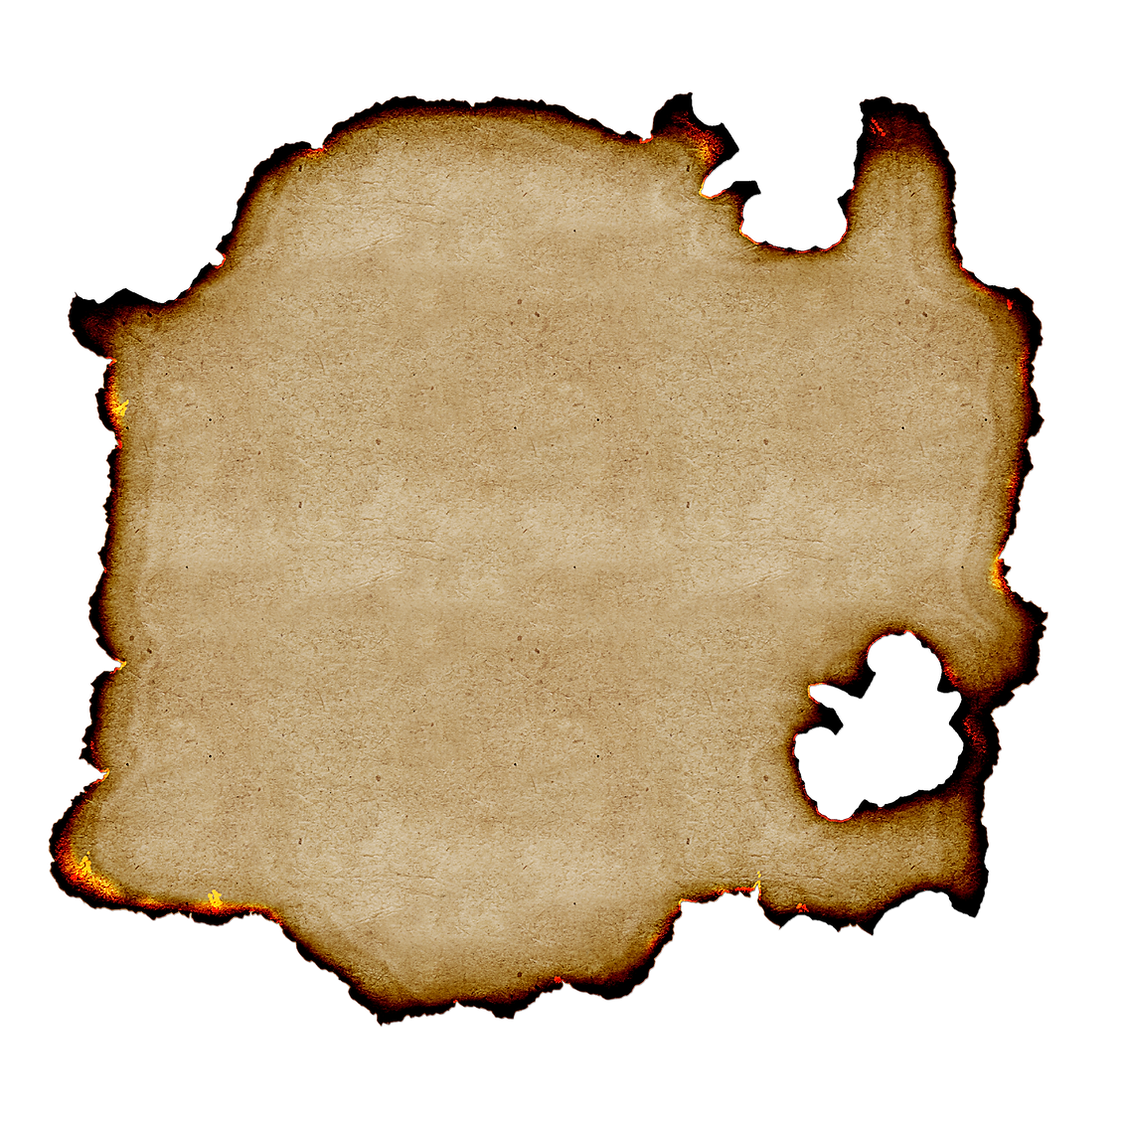 free-burnt-paper-texture-background.png